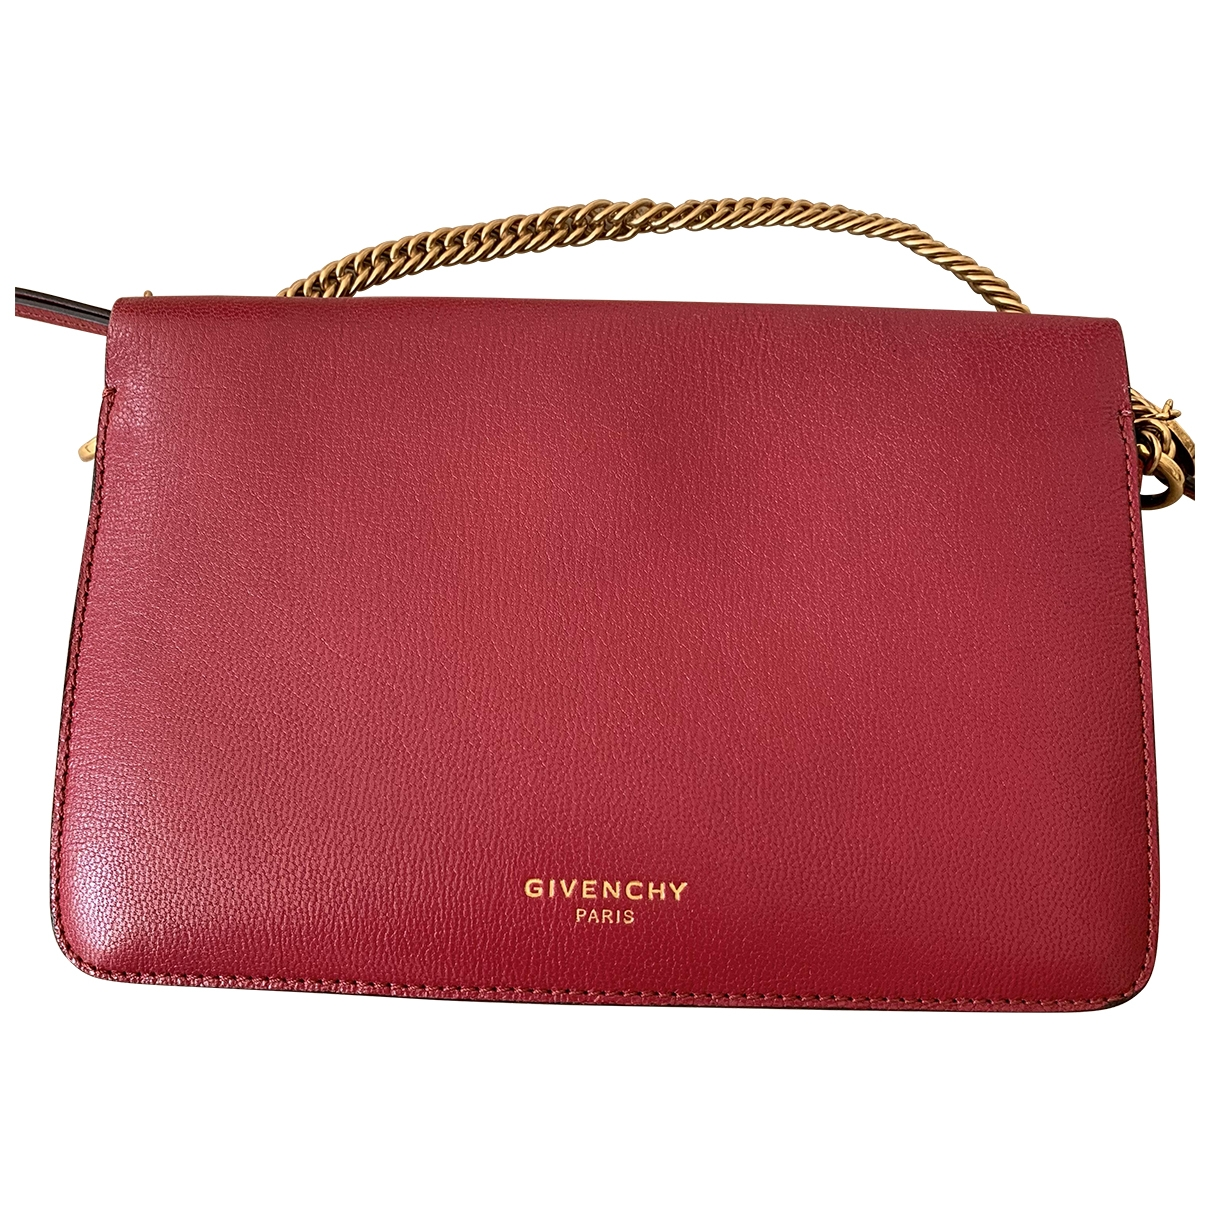 Givenchy CROSS3 Red Leather handbag for Women \N